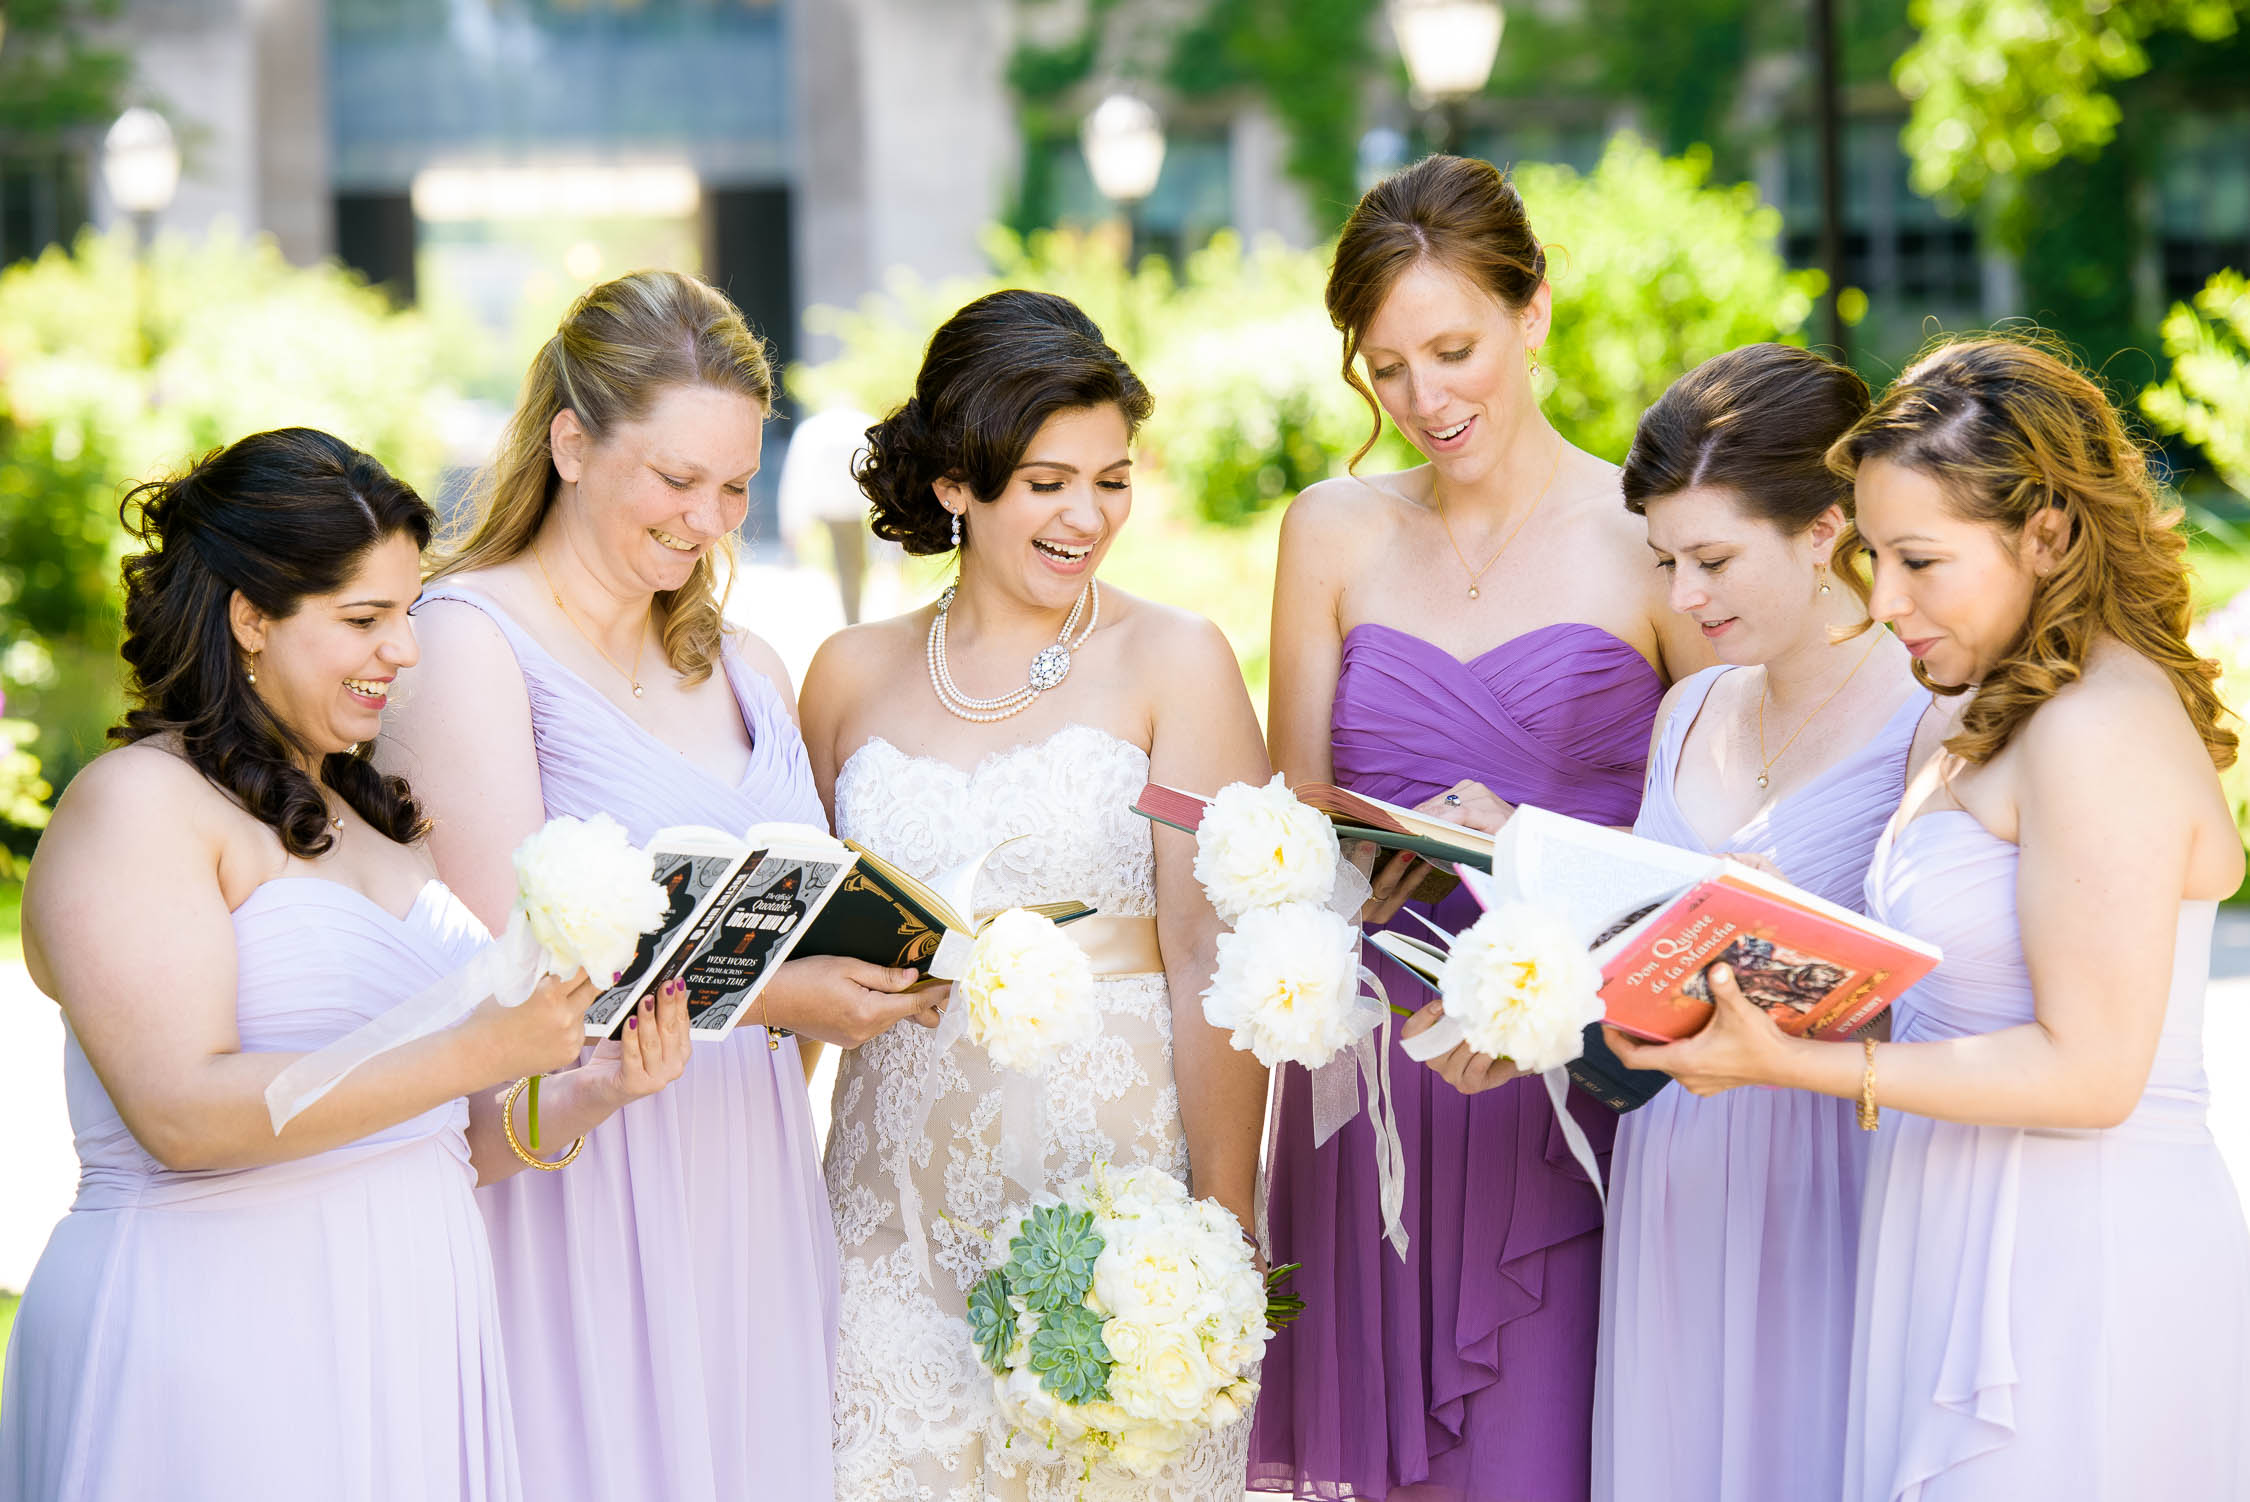 Bridesmaid with their books during a University of Chicago wedding.